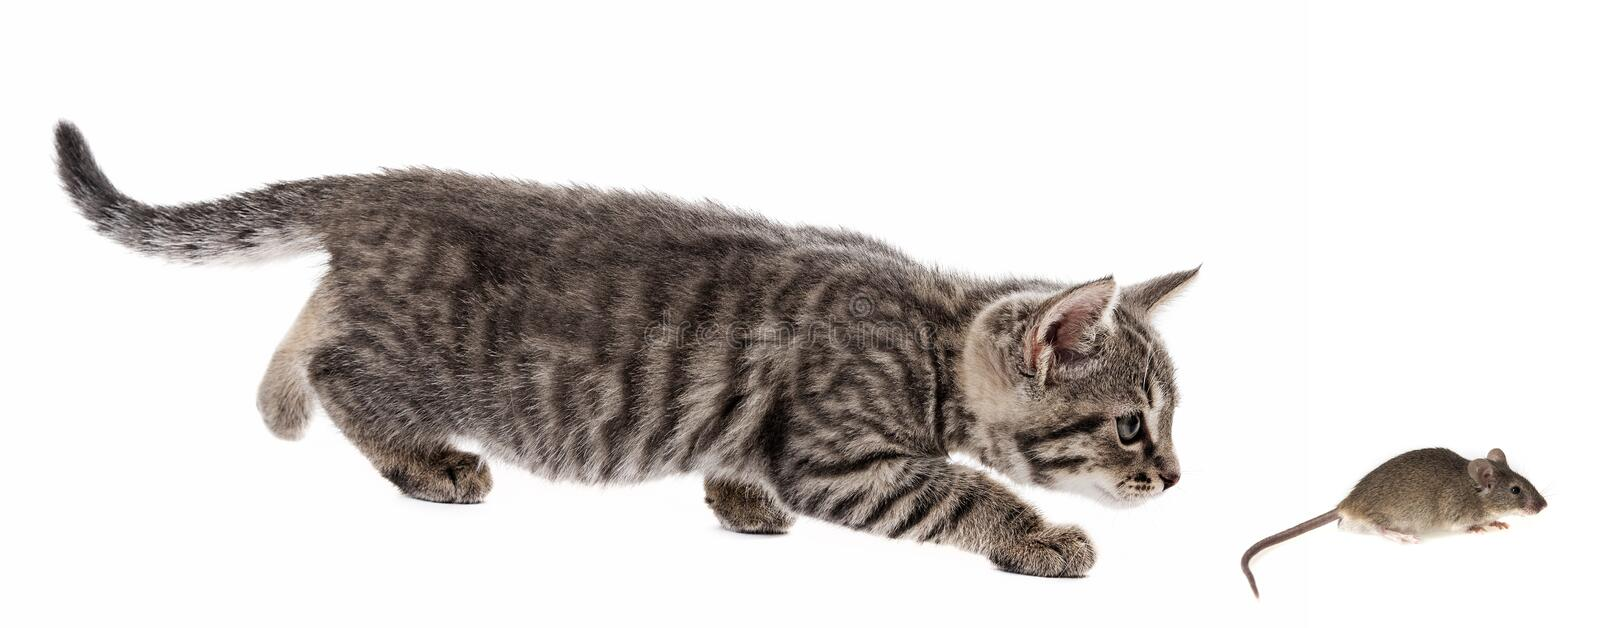 Kitten and mouse royalty free stock photos